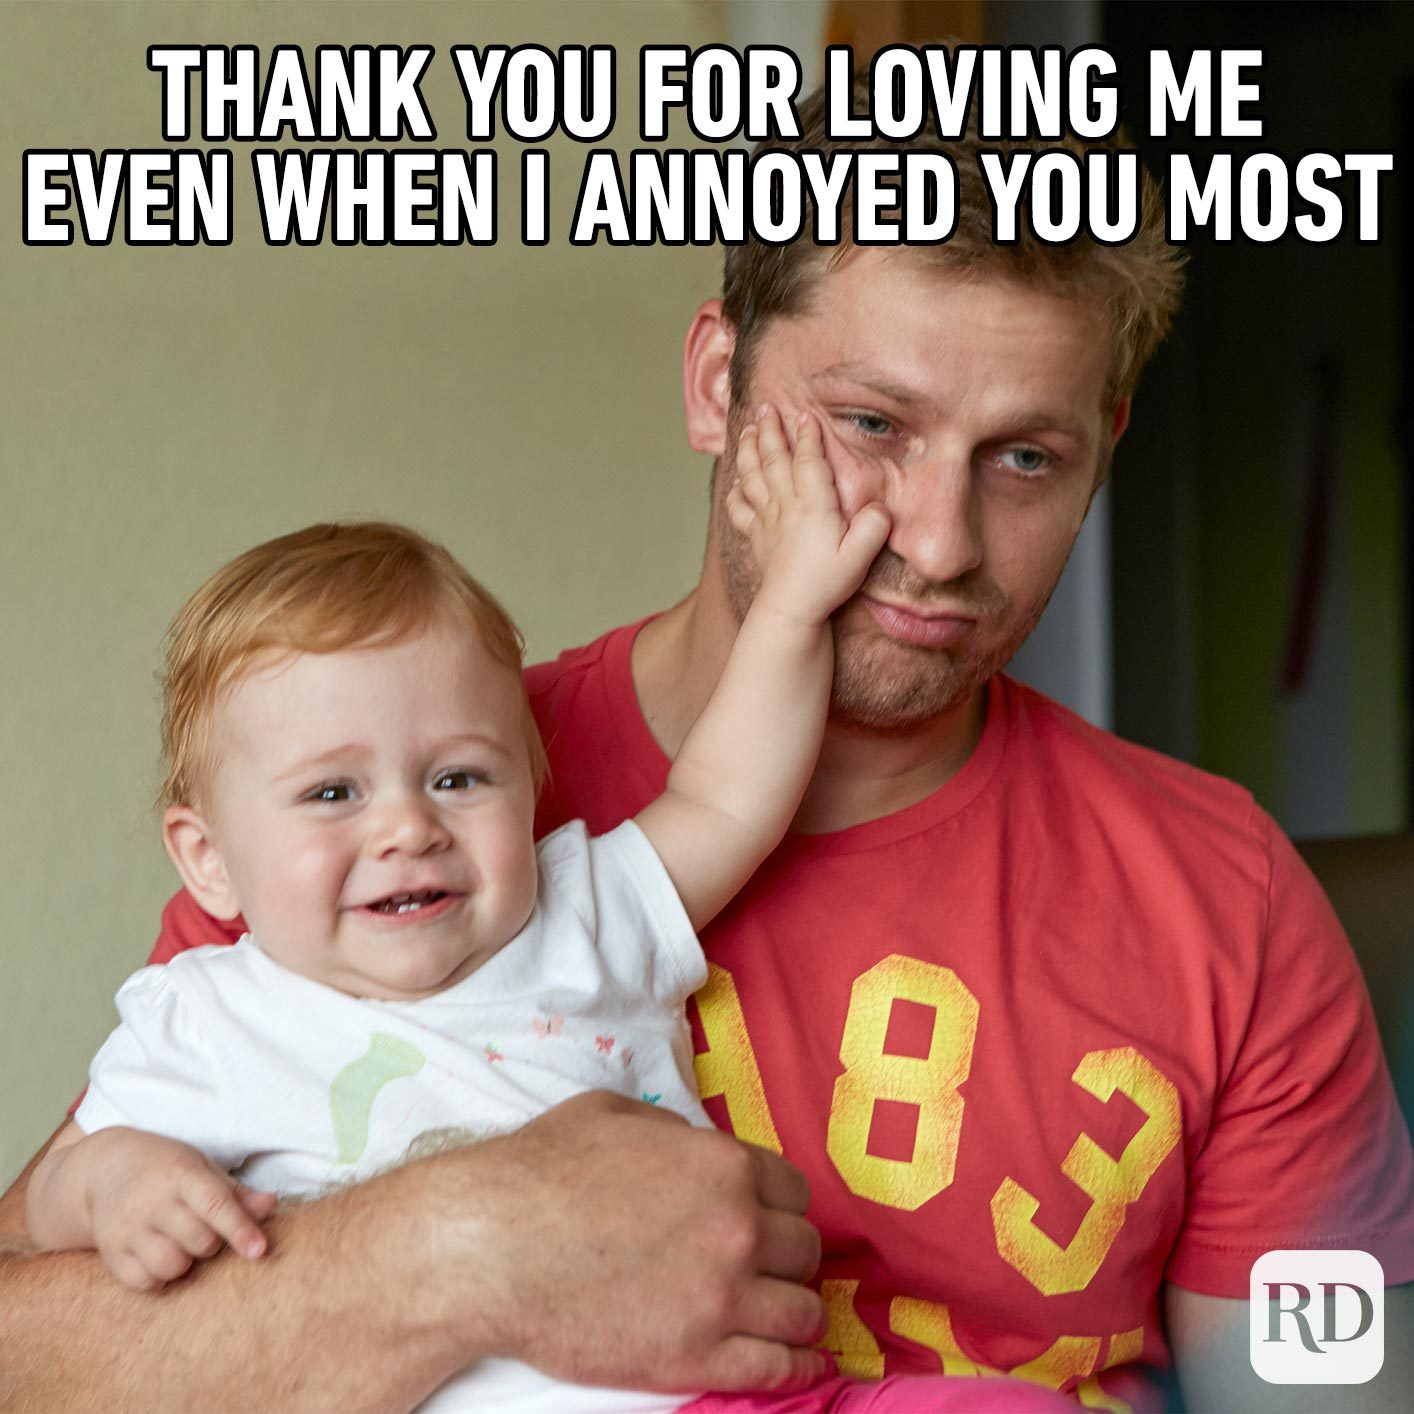 Baby punching father. Meme text: Thank you for loving me even when I annoyed you most